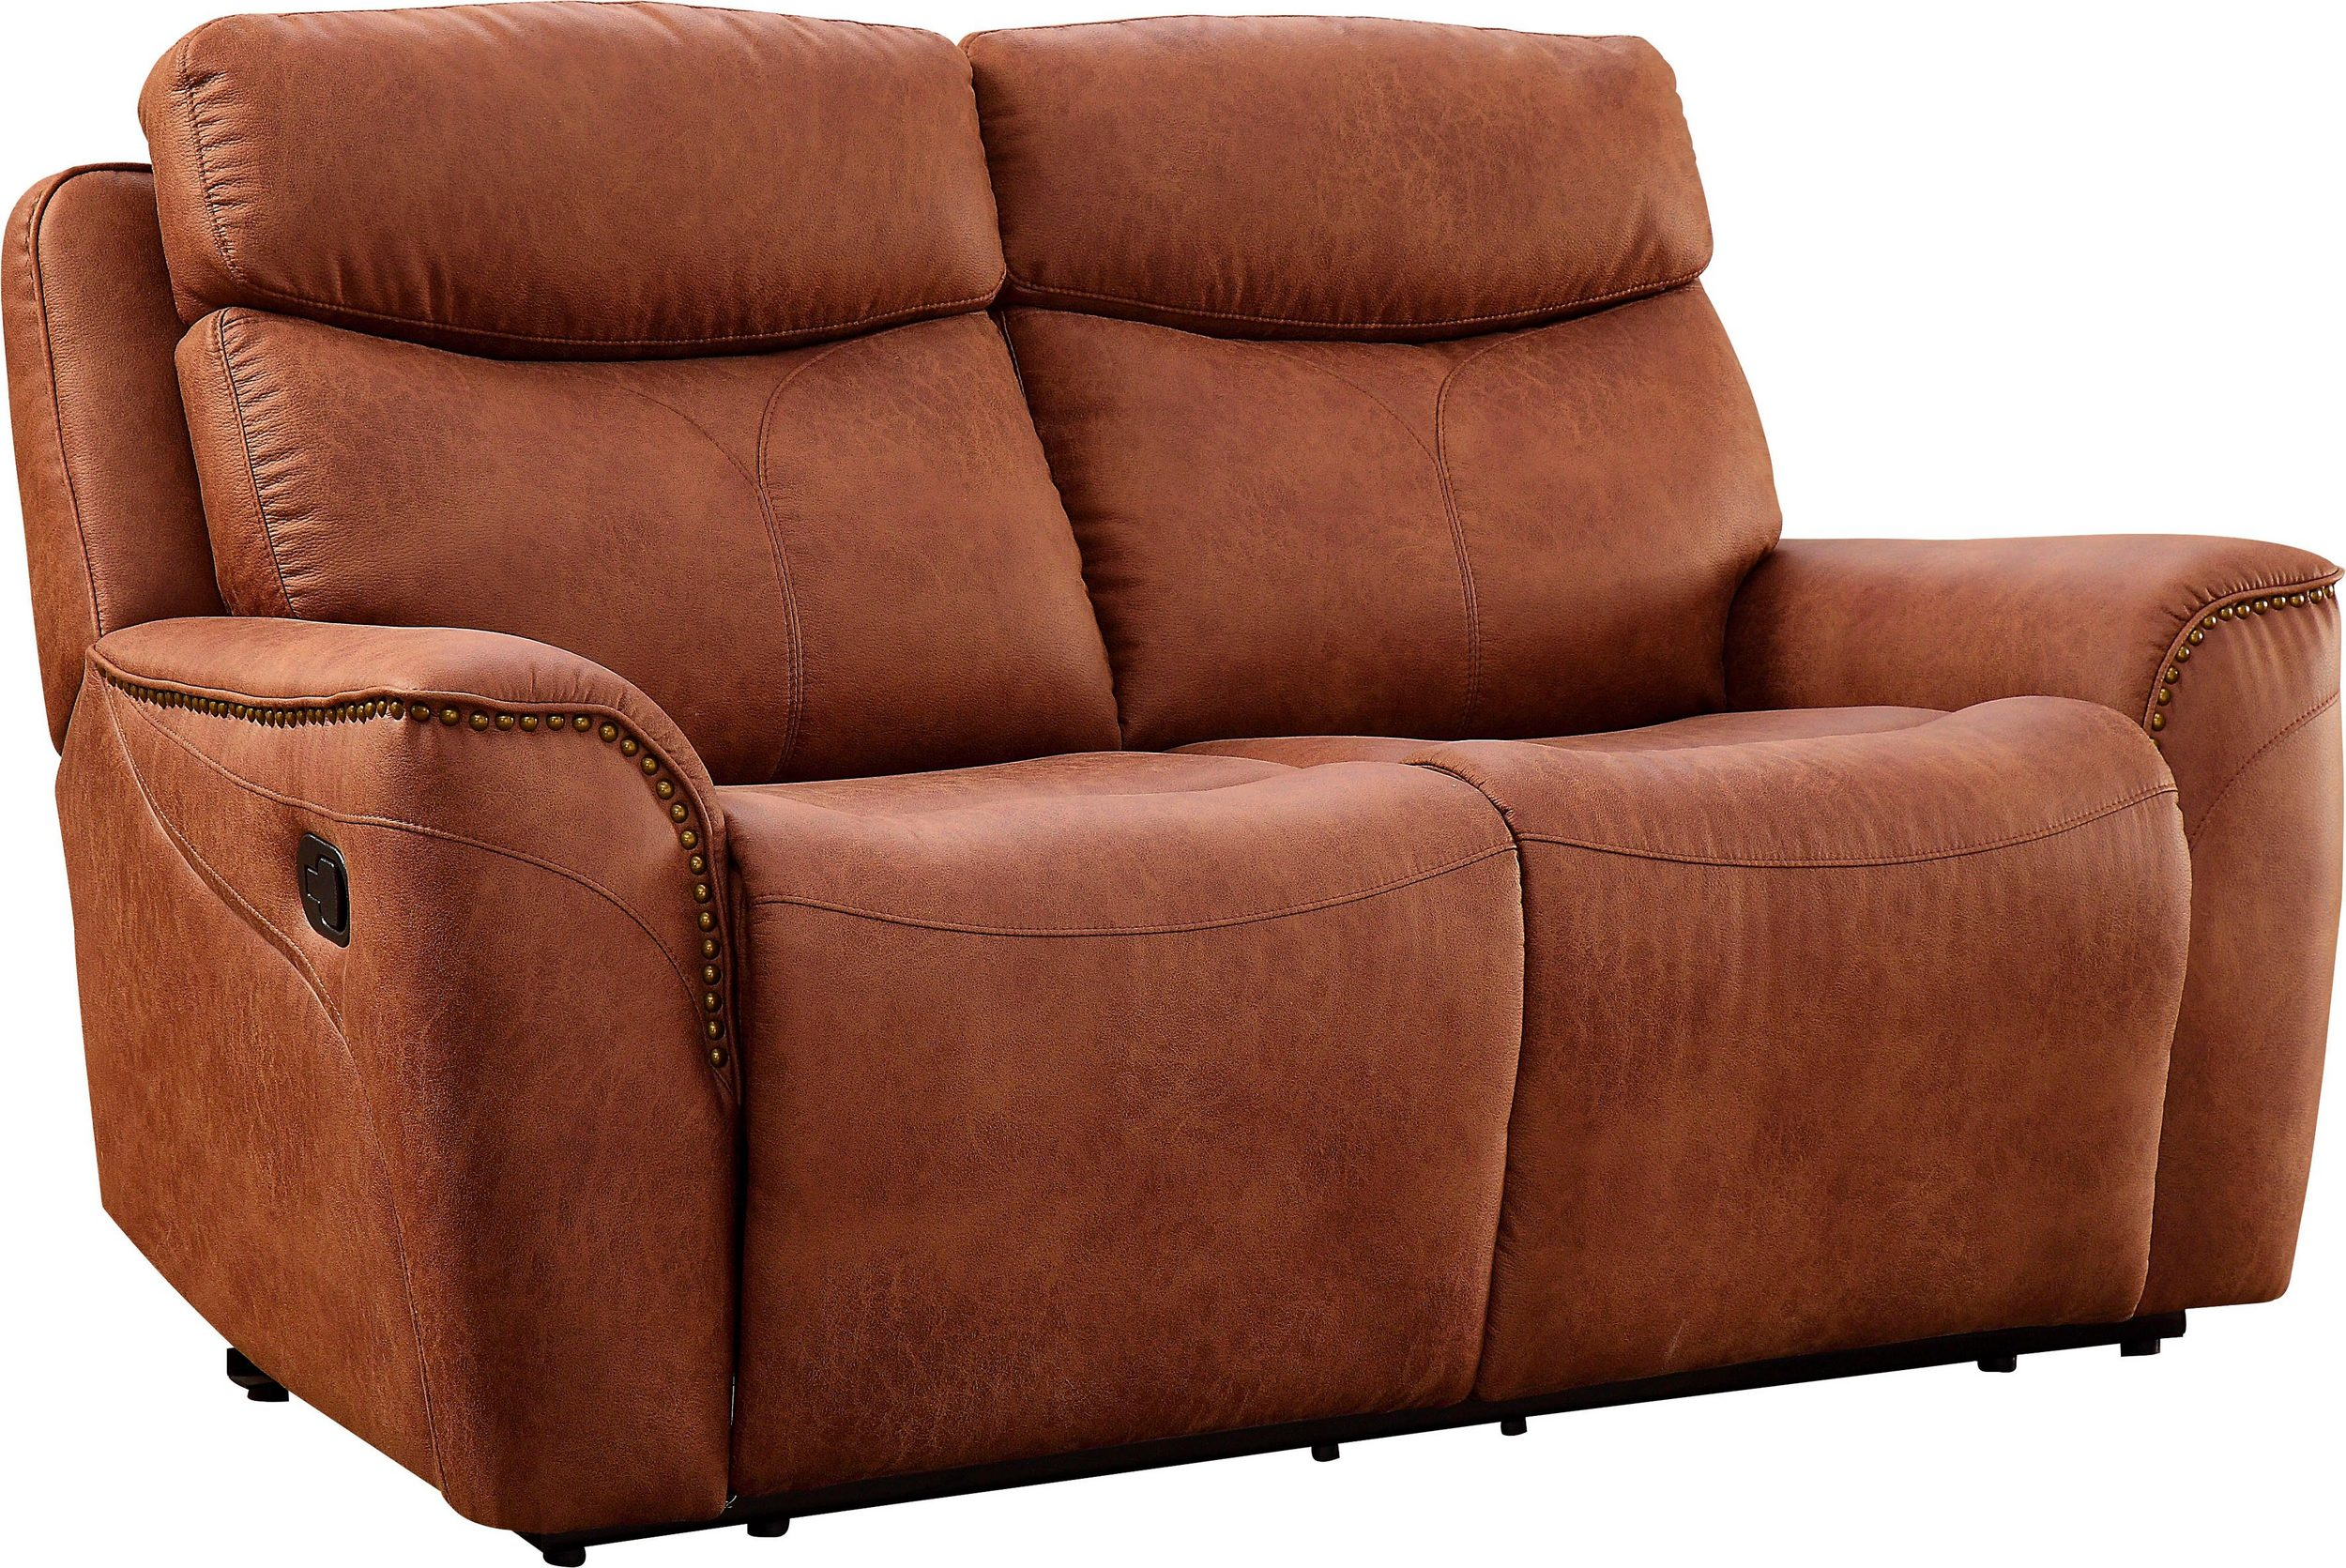 2-Sitzer Sofa Pius mit Relaxfunktion